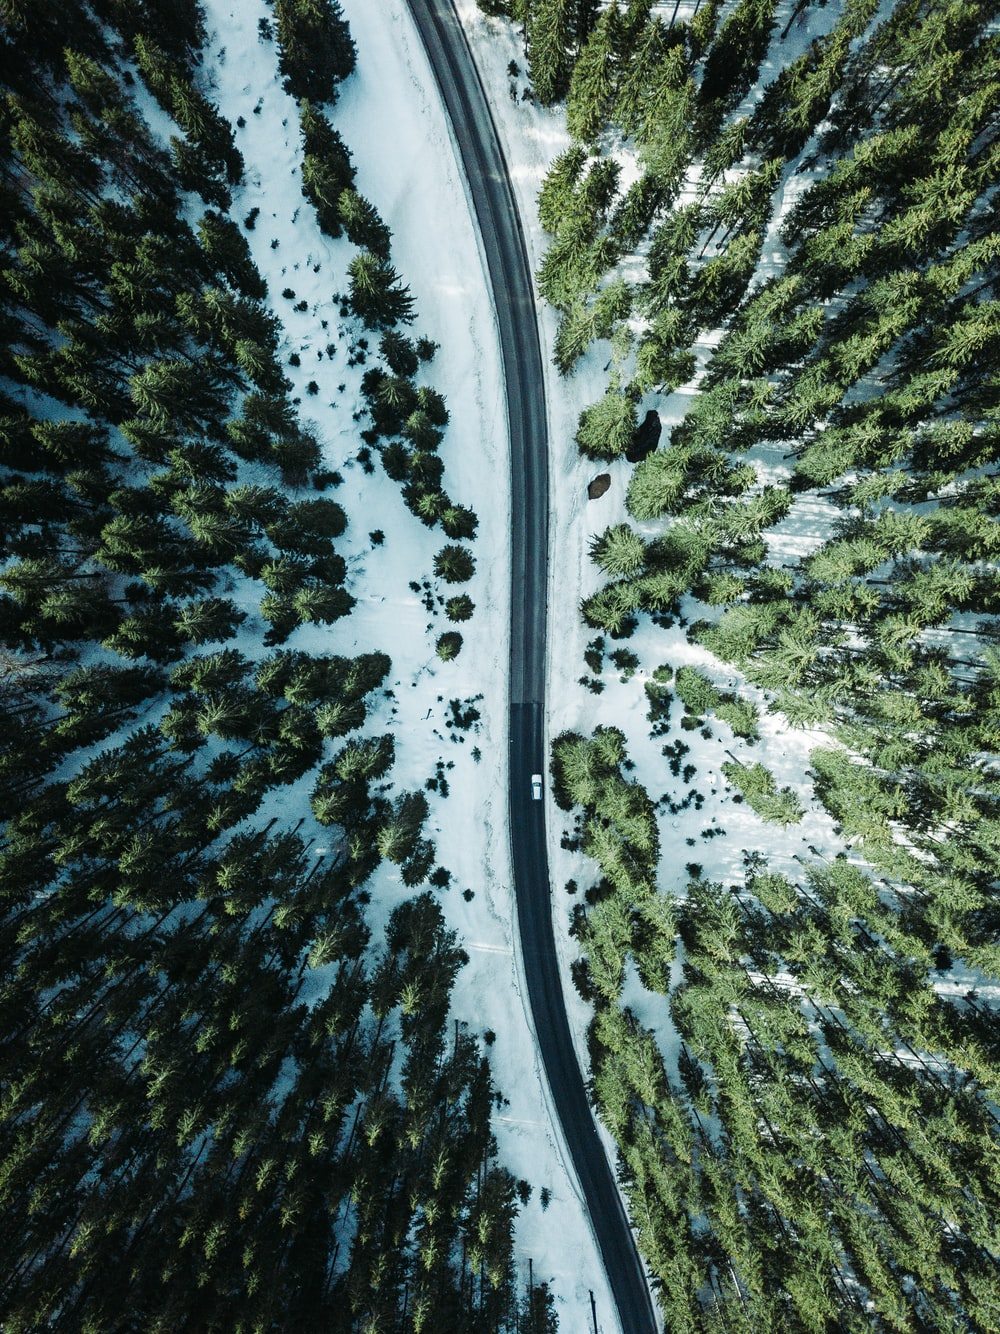 aerial photography vehicle on road surrounded by trees